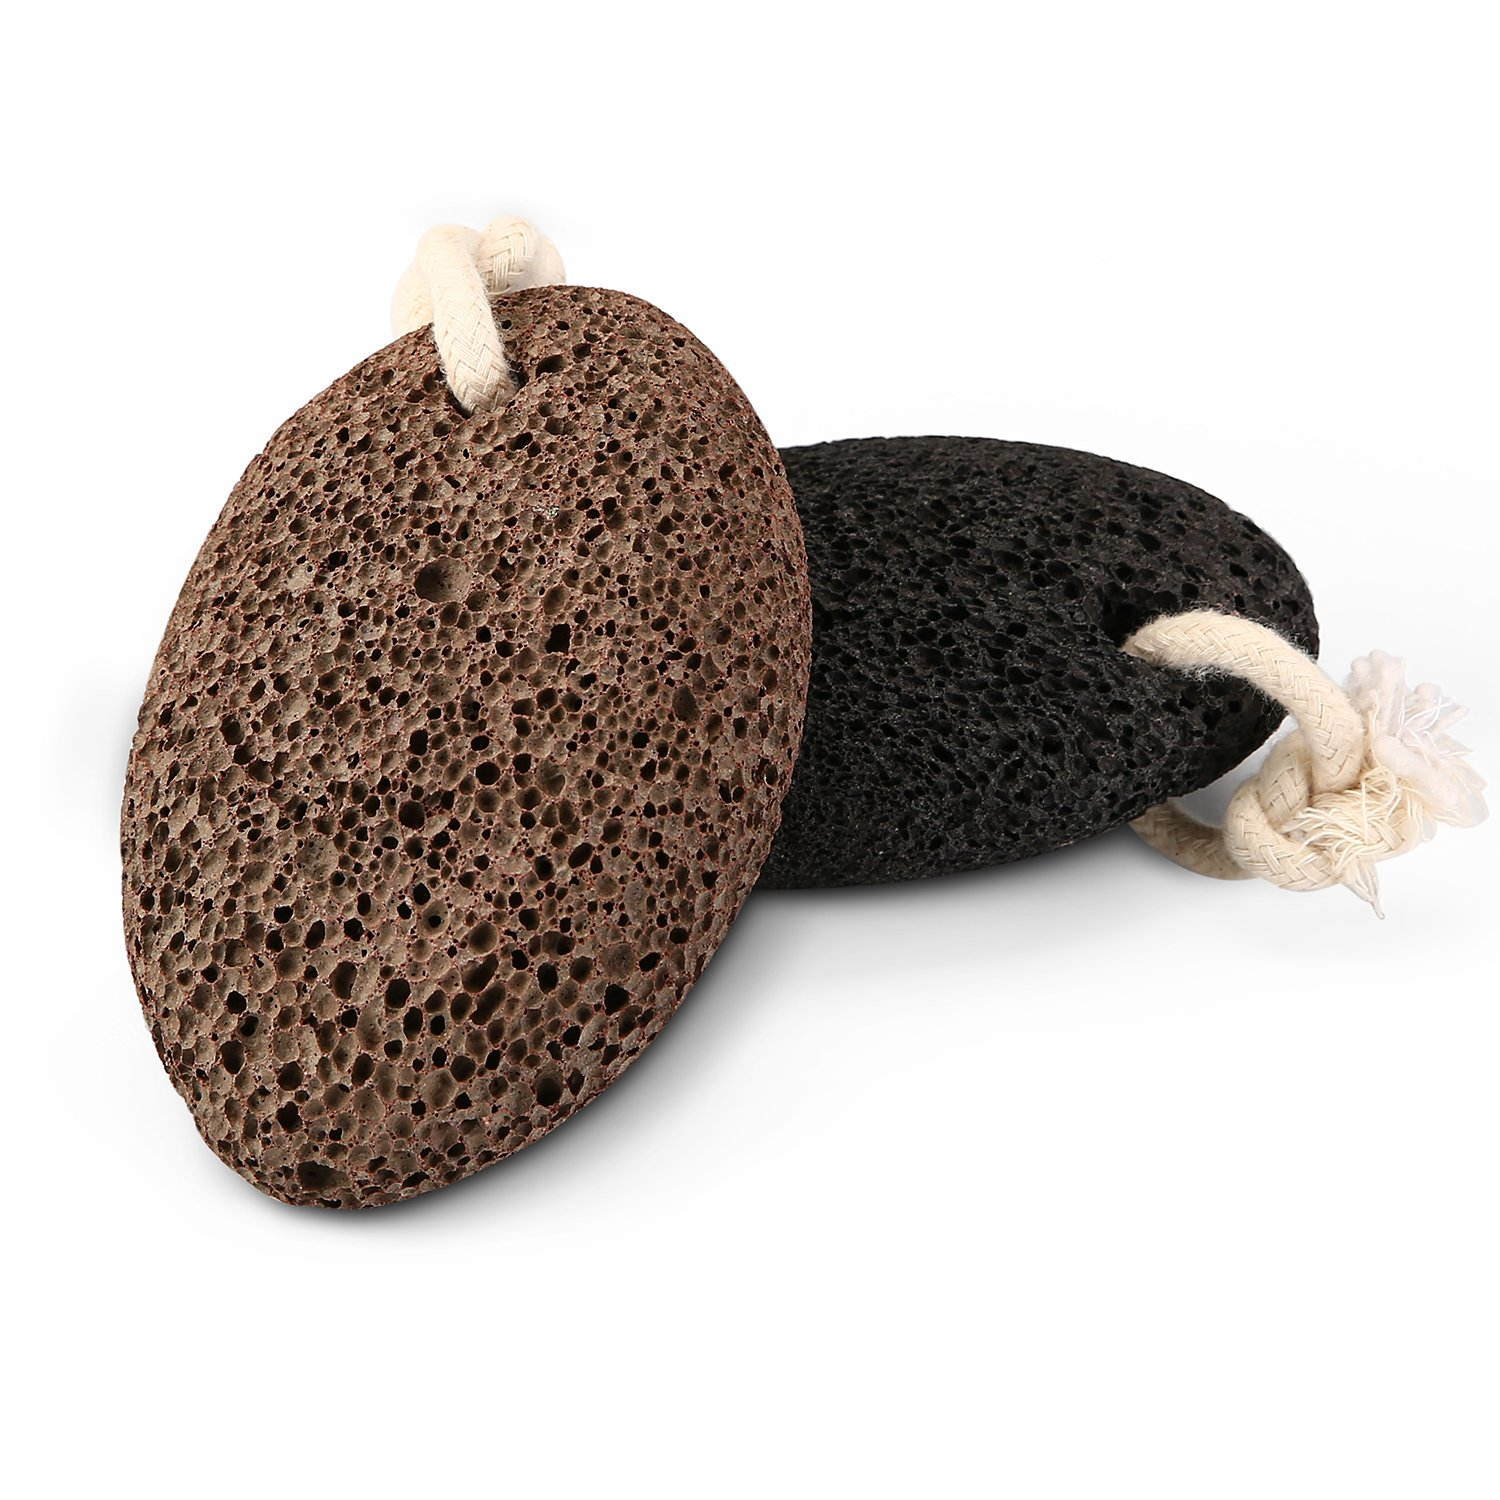 Volcanic Lava Pumice Stone to Remove Dead Skin - Natural Foot Scrubber and Callus Remover for Feet and Hands - Ultimate Pedicure Tools - Natural Foot File - 2Pack